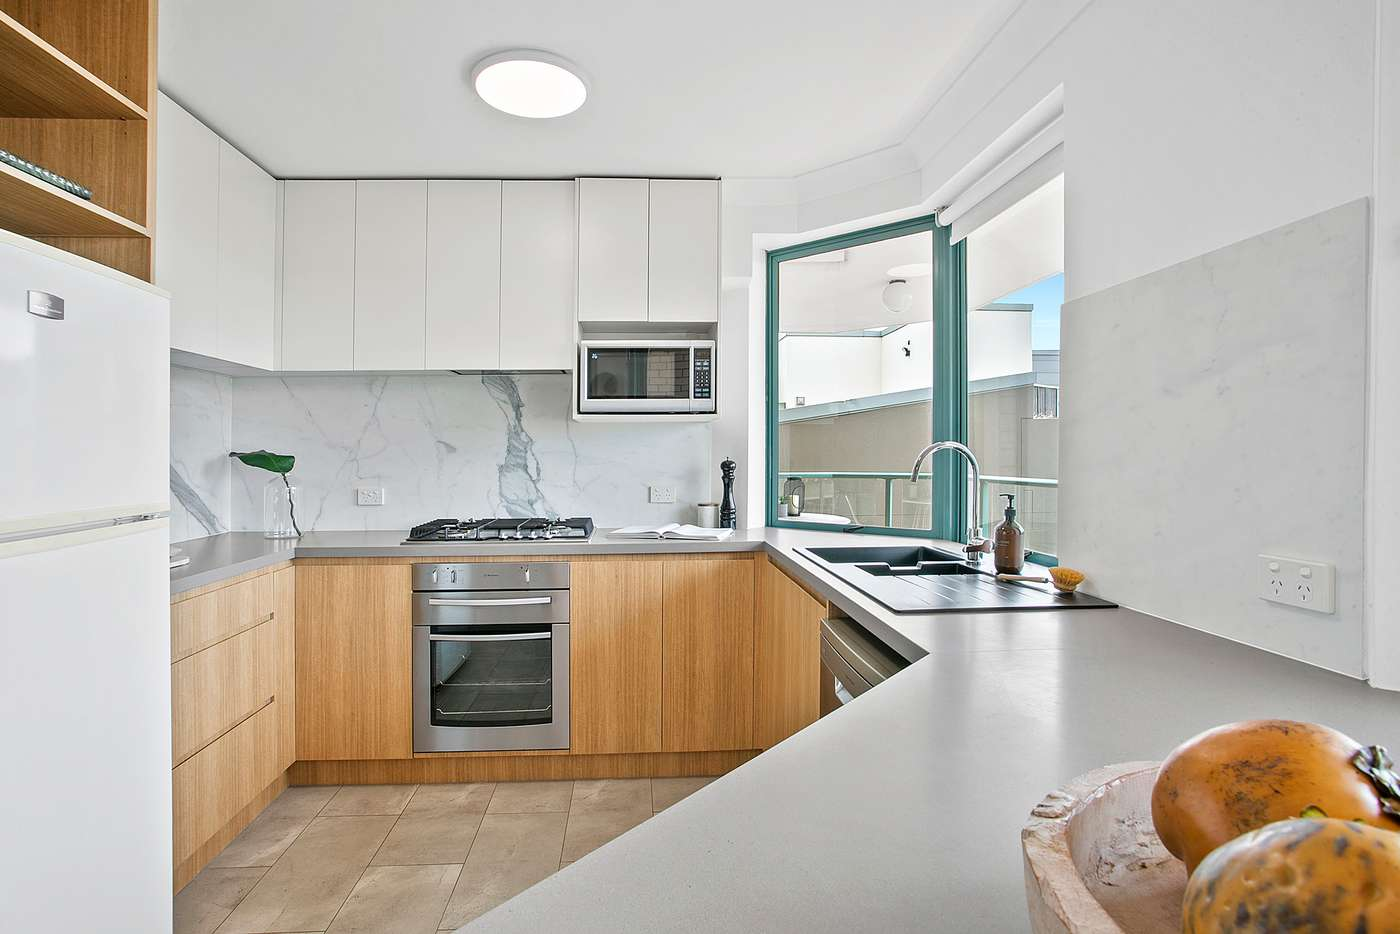 Fifth view of Homely apartment listing, 19/172-178 Maroubra Road, Maroubra NSW 2035